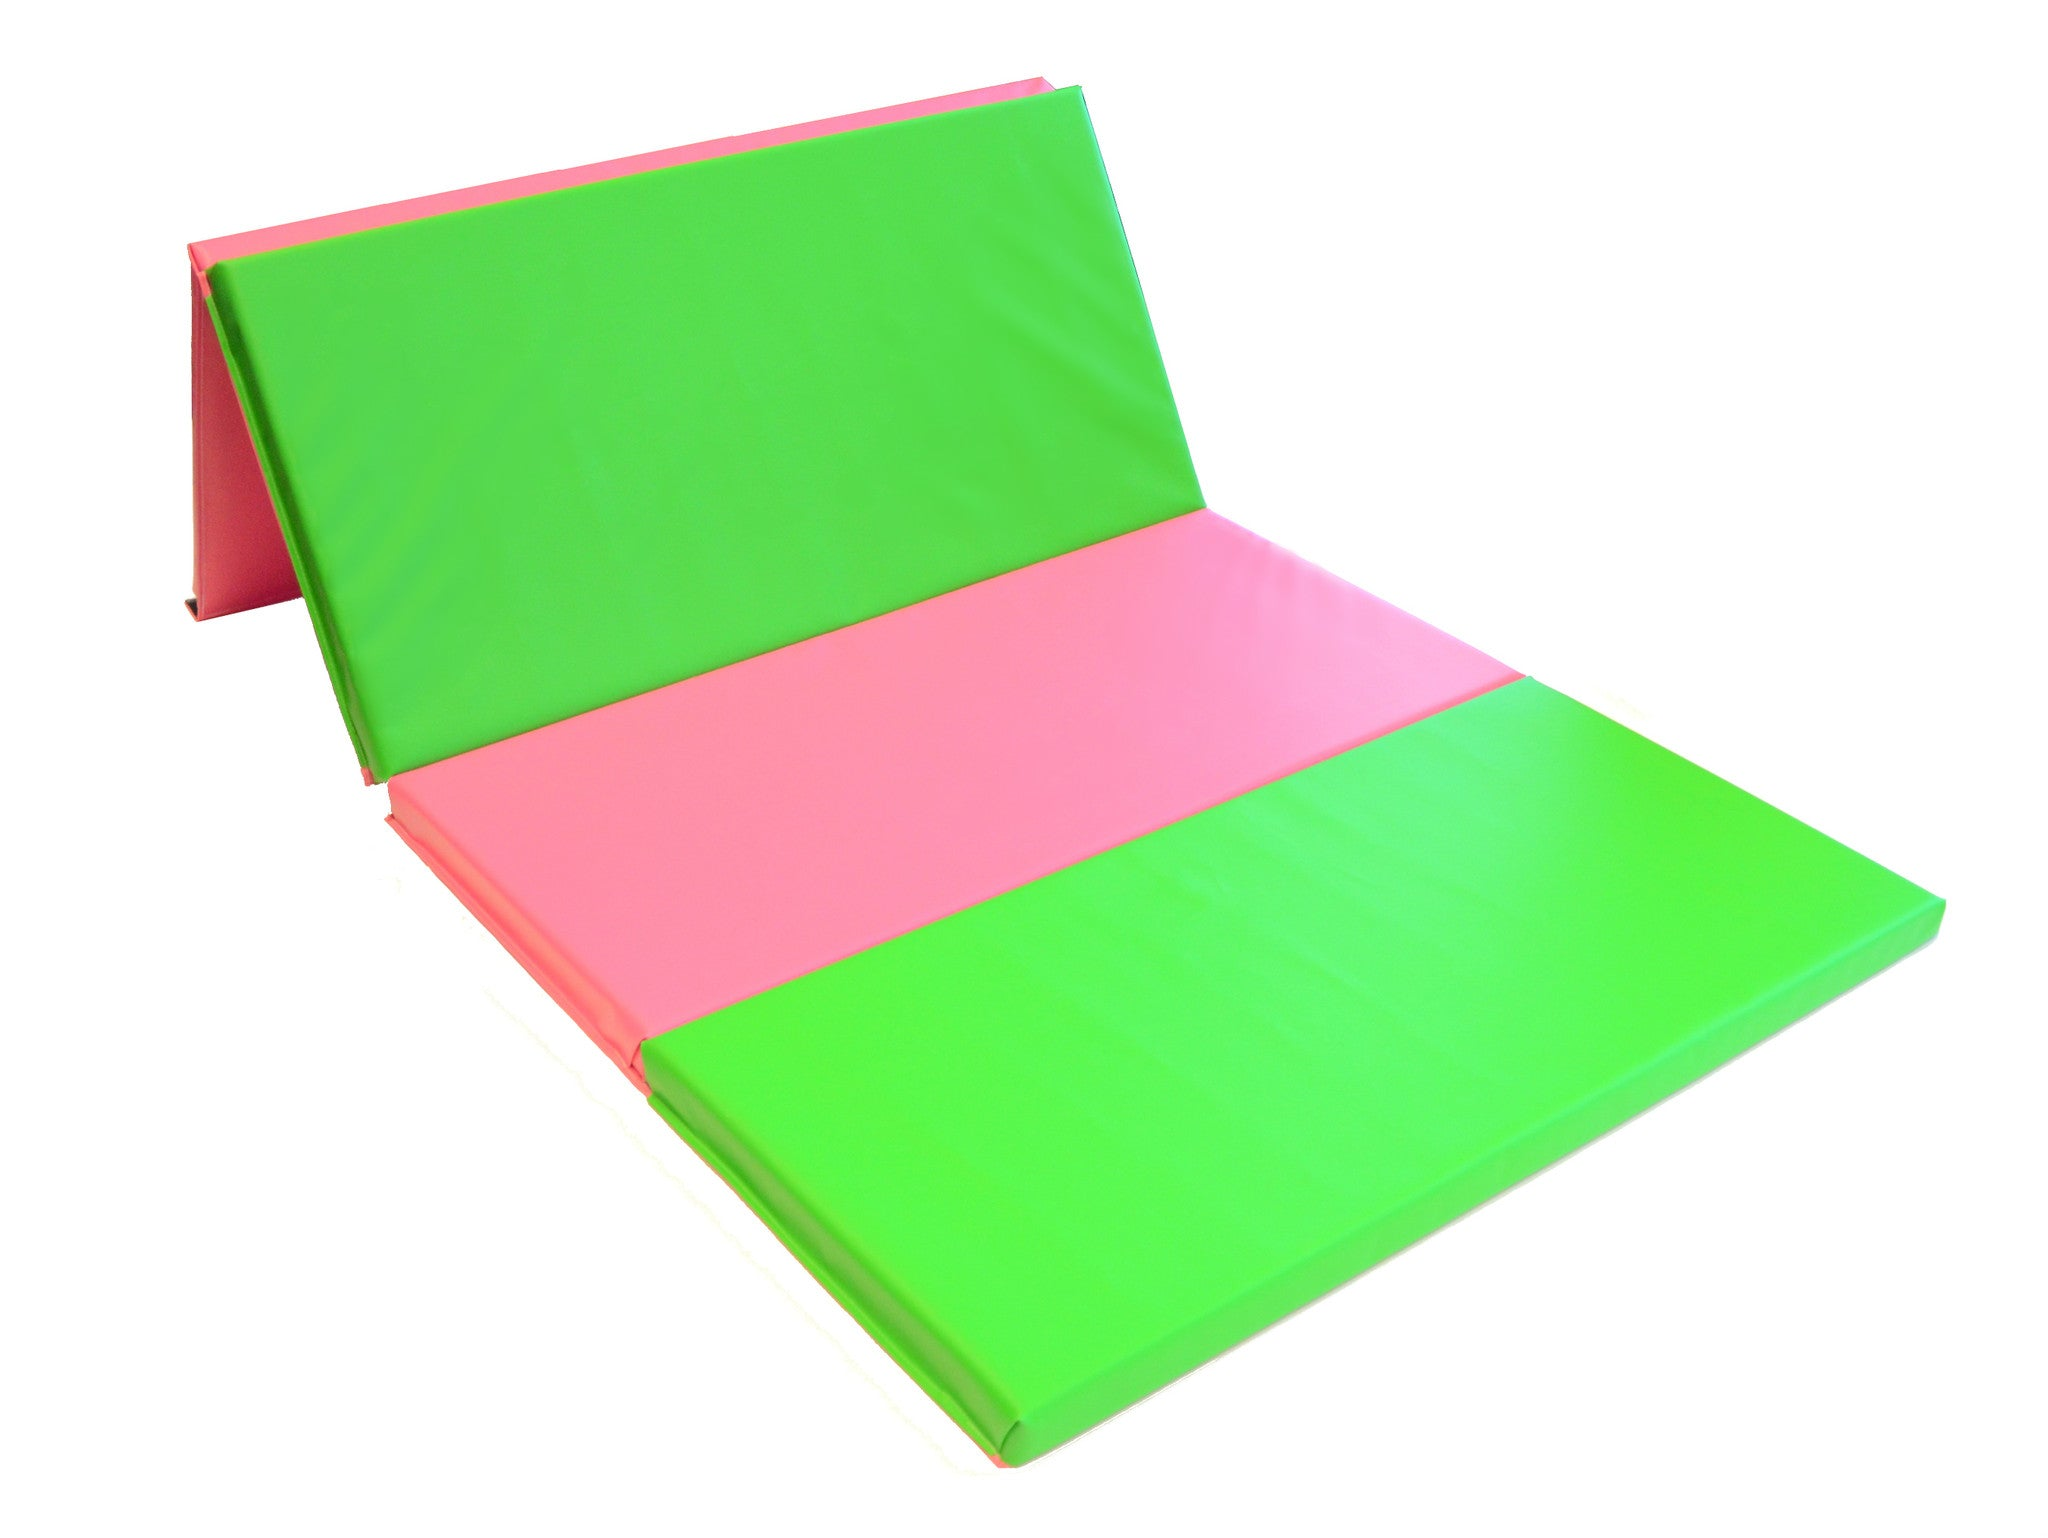 "4' x 8' x 2"" Gymnastics Mat  Intermediate Level"